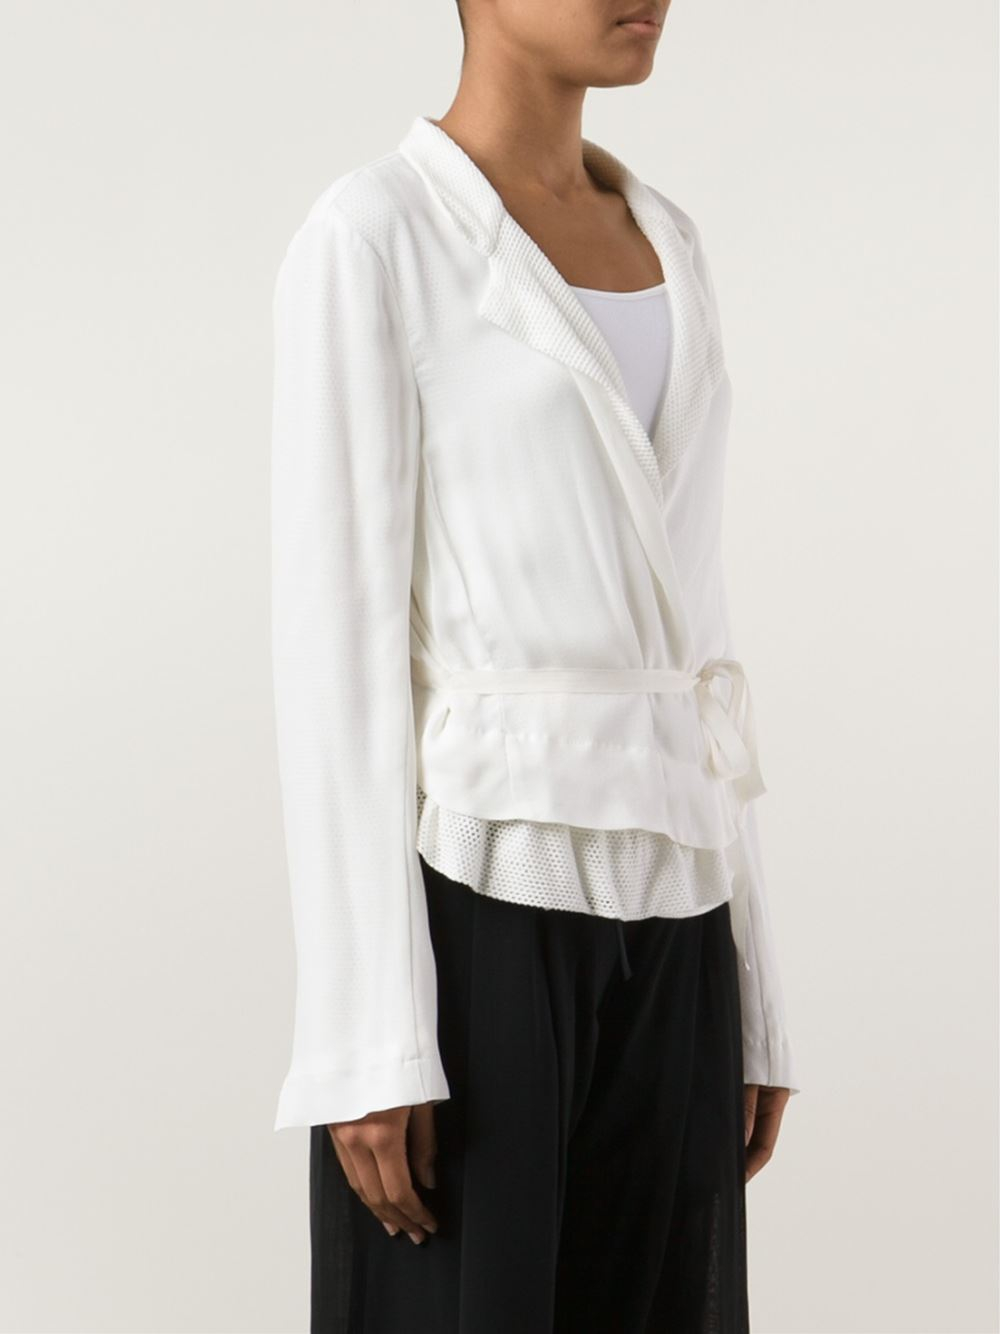 Find great deals on eBay for white wrap jacket. Shop with confidence.